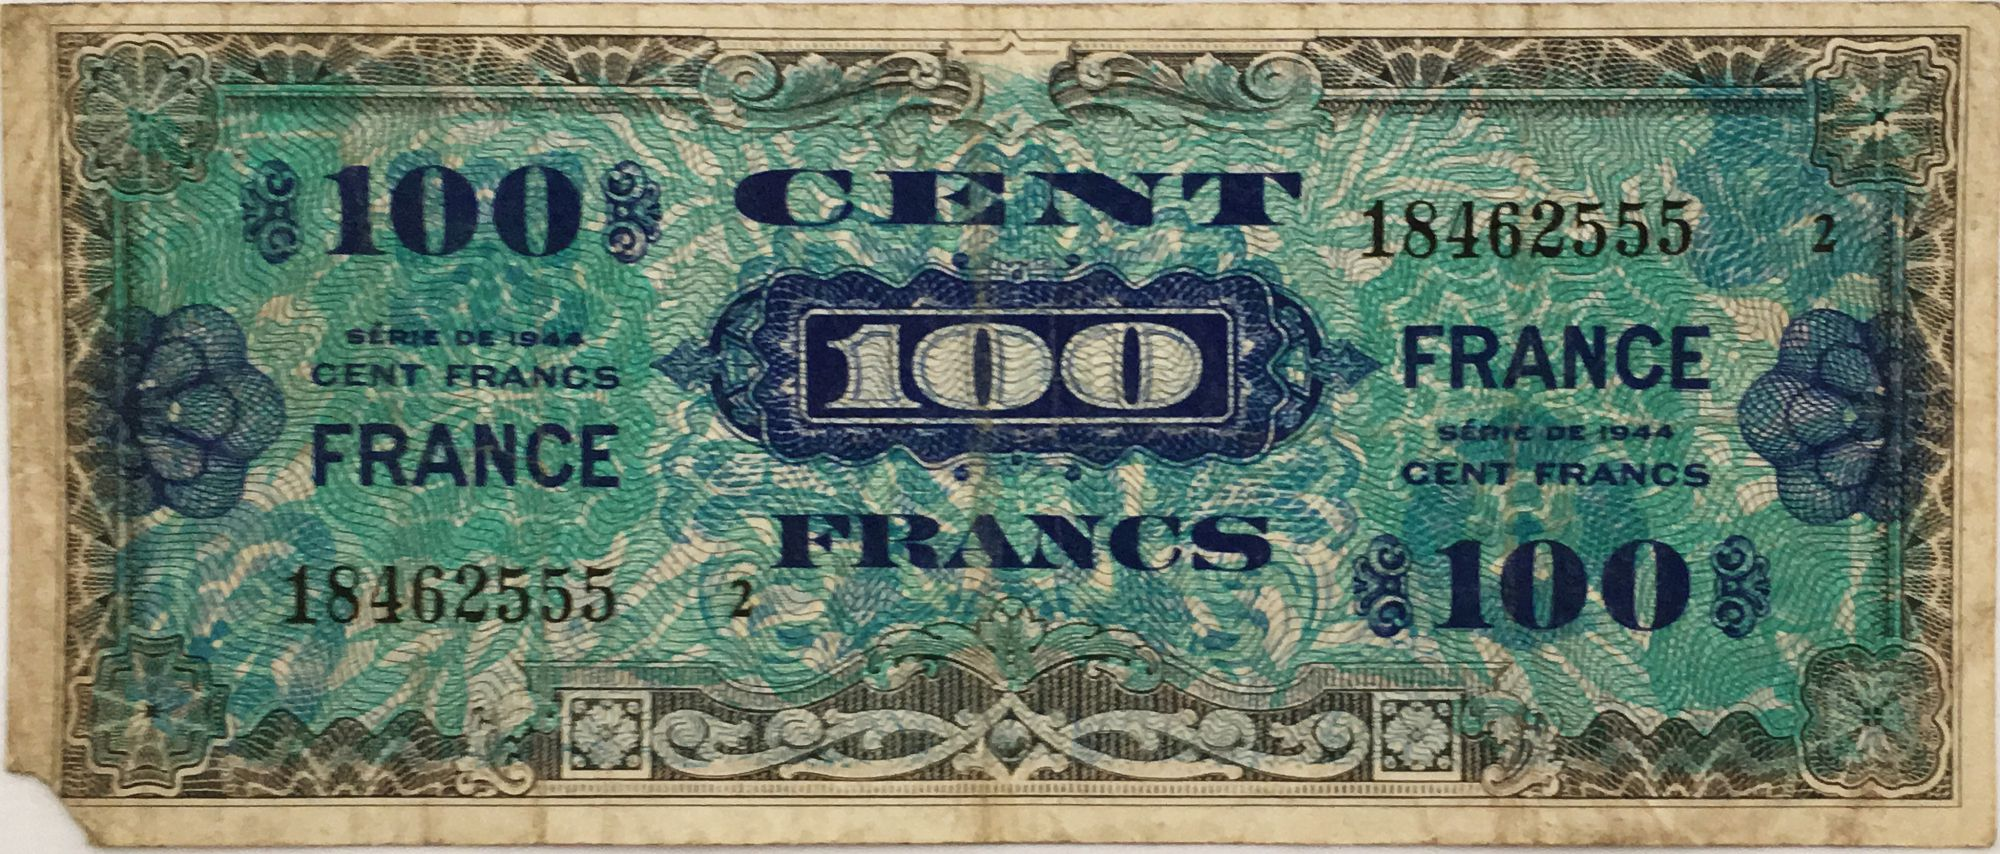 France 100 Francs Allied Military Currency - 1944 - Serial Small 2 - VG to F